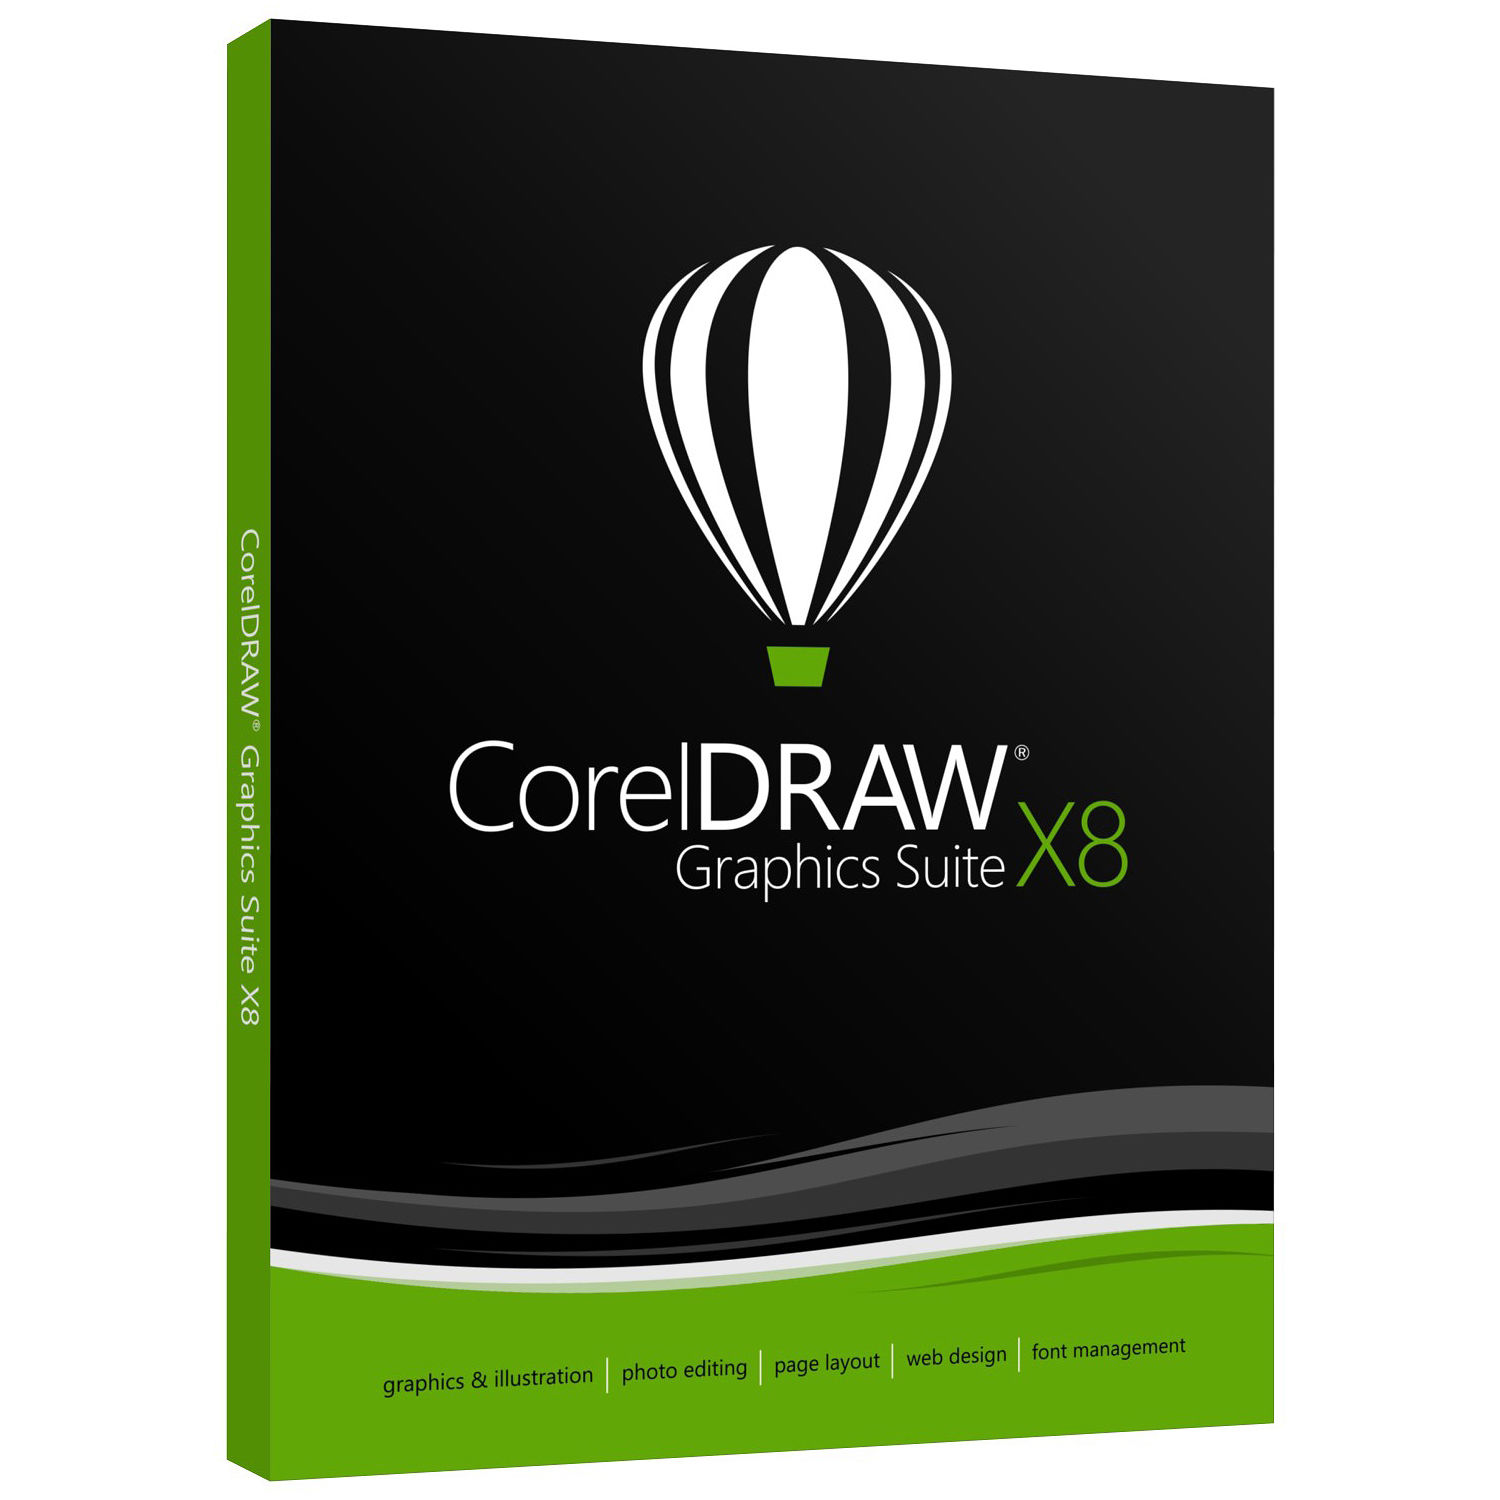 CorelDRAW Crack With Activation key Free Download